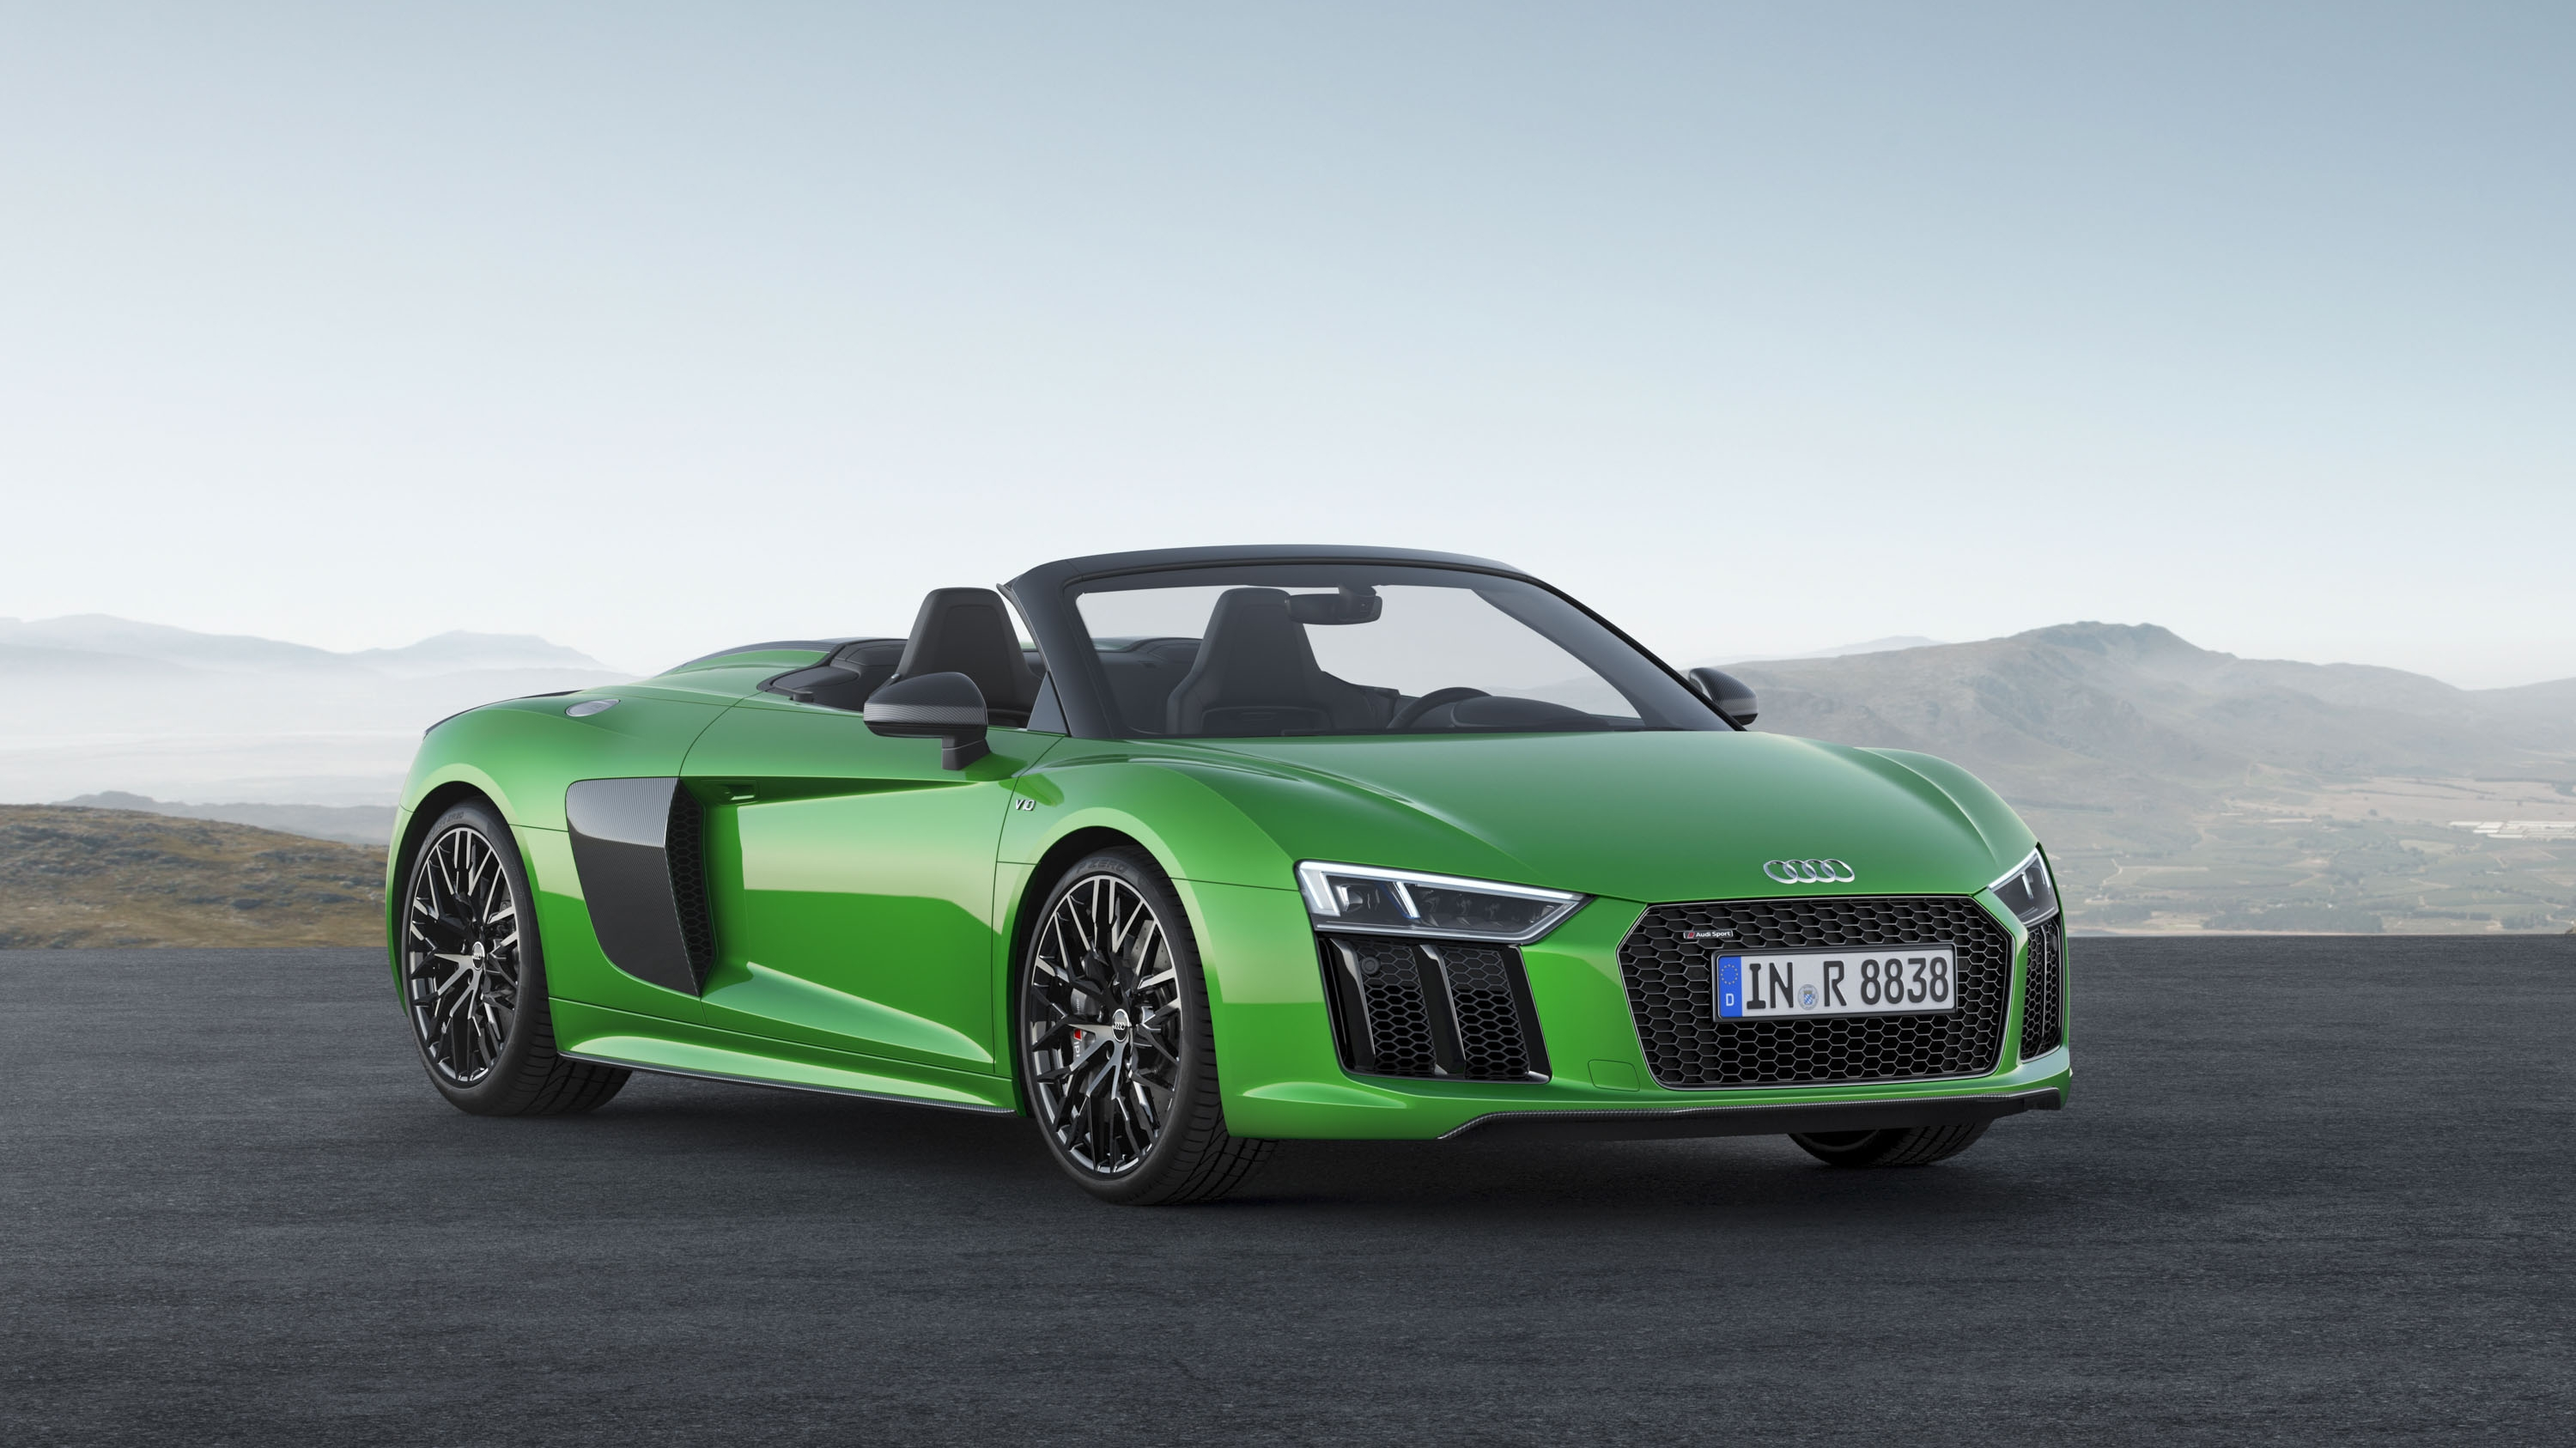 2018 Audi R8 Spyder V10 plus (Color: Micrommata Green) Front Three-Quarter Wallpapers (4)